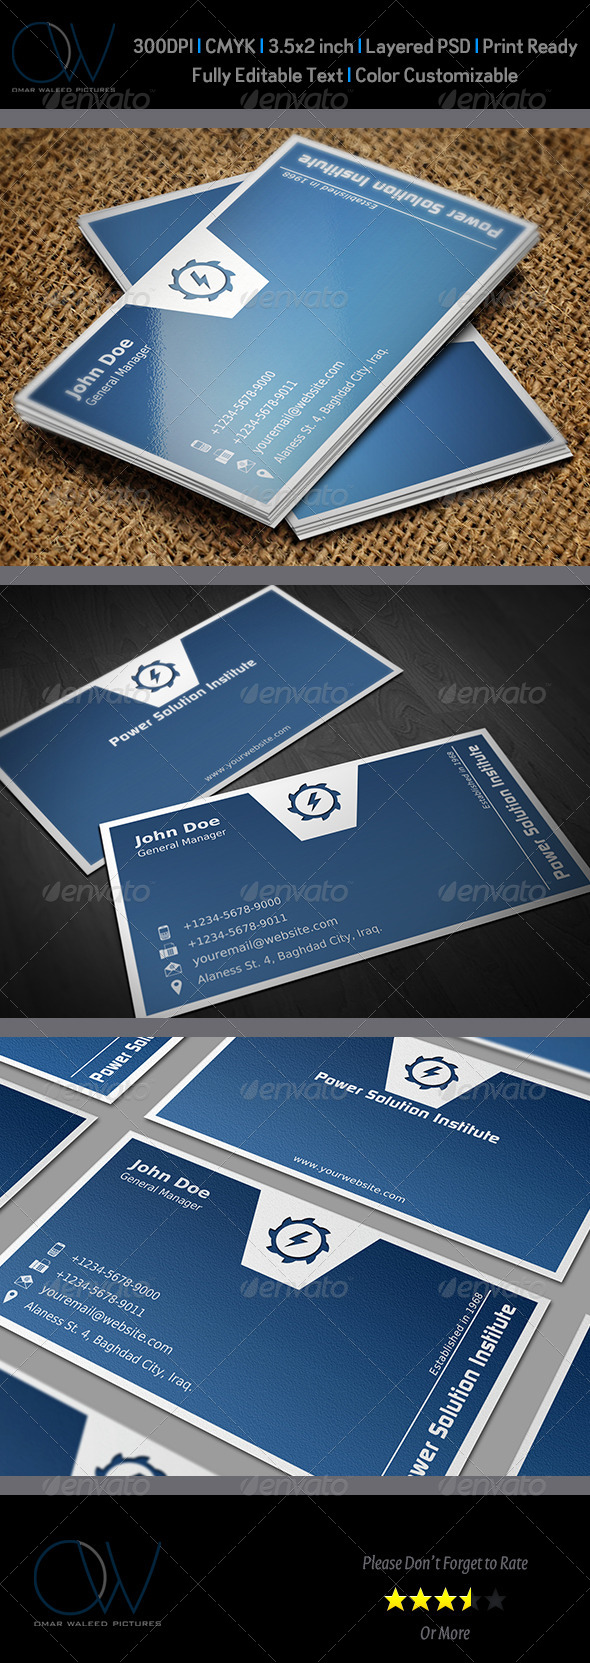 Corporate Business Card Template Vol.38 - Corporate Business Cards